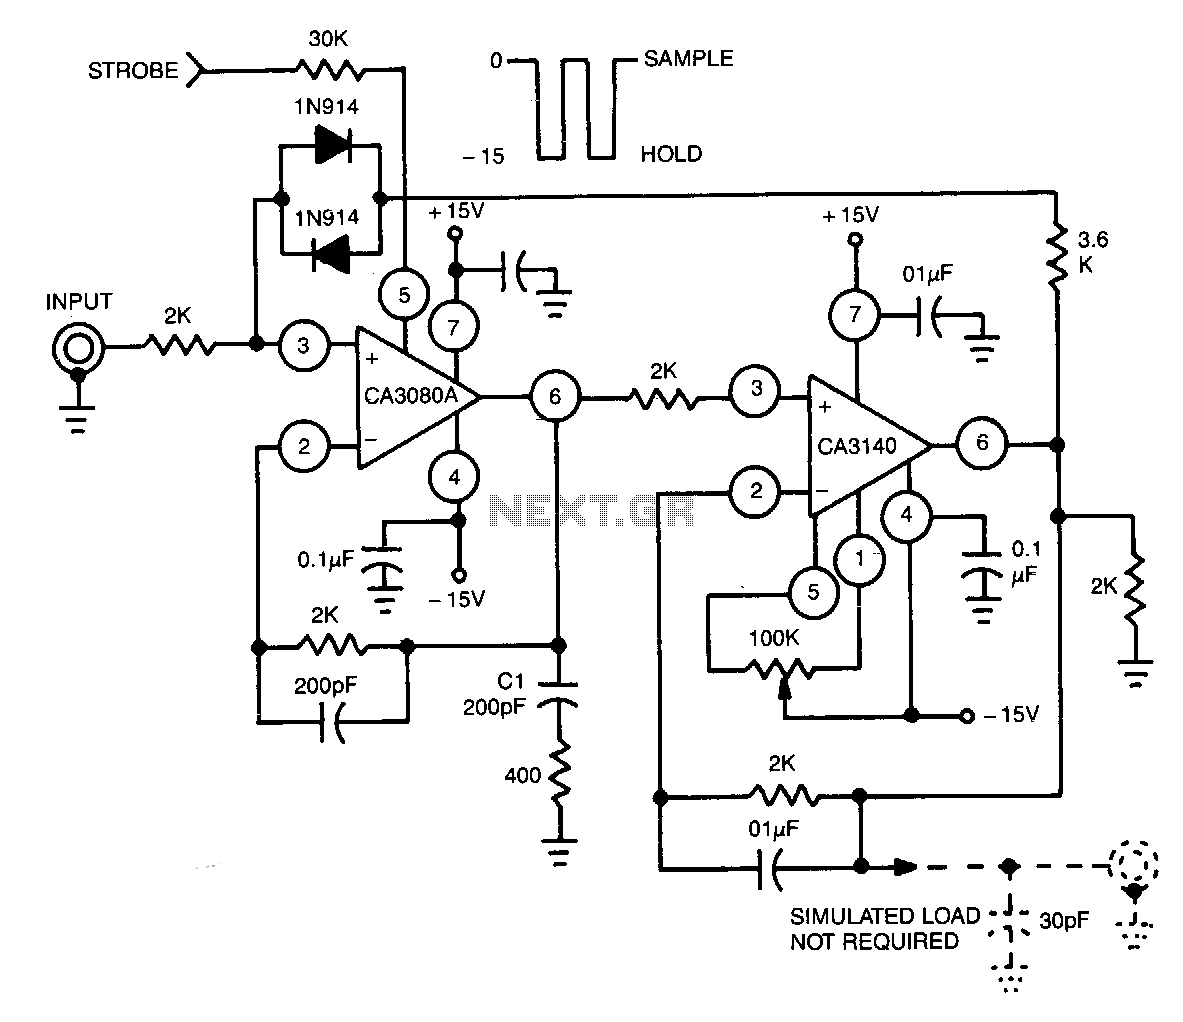 2ea 1973 Fiat 1300 Wiring Diagram Wiring Resources